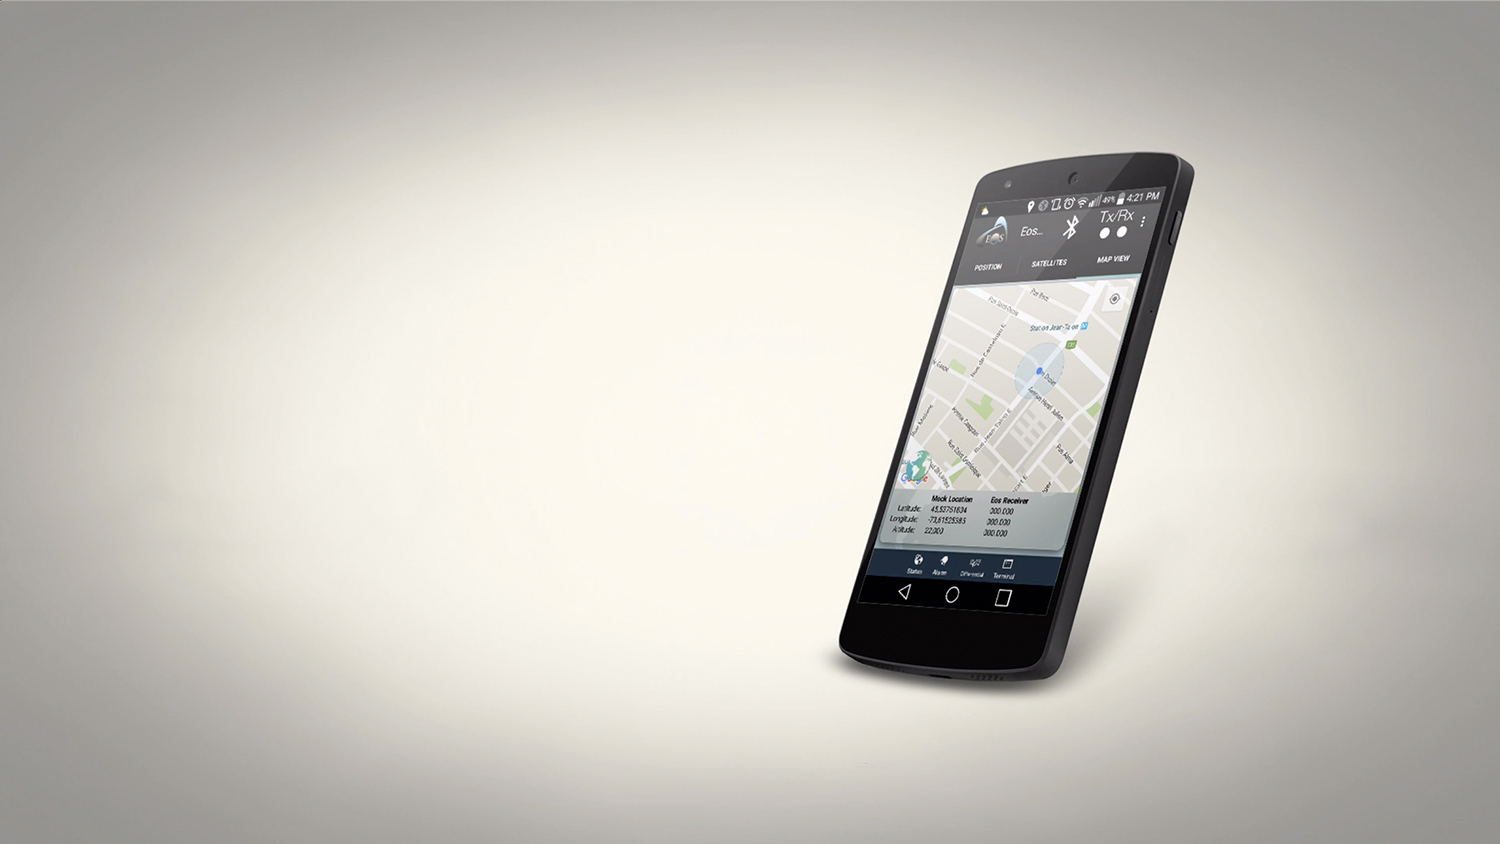 Smartphone tablet bluetooth GNSS receiver, location, mock location, Eos Tools Pro, survey mount, GPS